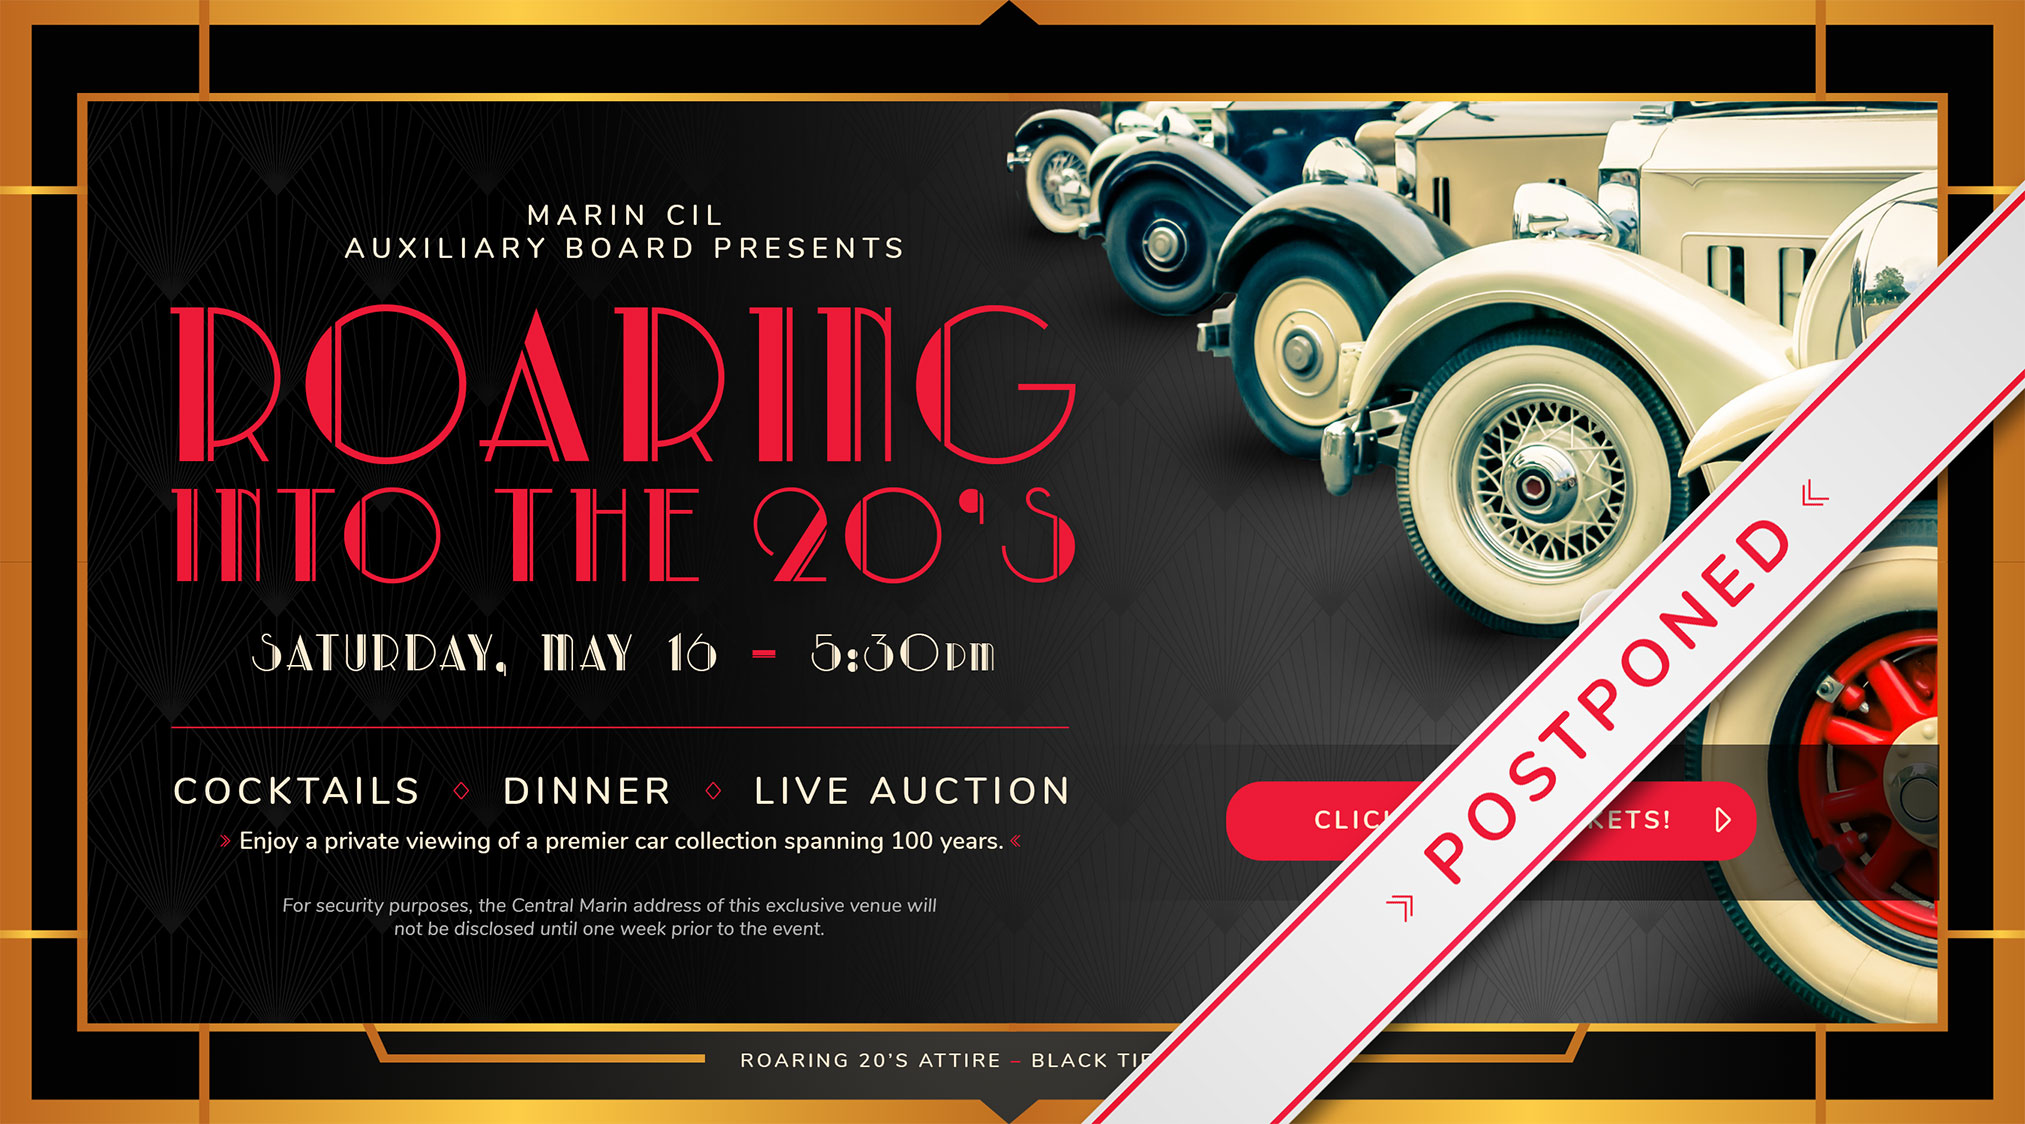 Graphic of art deco design inspired by the 1920s with a photo of classic cars. POSTPONED. Marin CIL Auxiliary Board Presents: Roaring Into The 20's on Saturday, May 16 at 5:30pm. Cocktails, dinner, and live auction; enjoy a private viewing of a premier car collection spanning 100 years. Dress in Roaring 20s attire; black tie is optional.